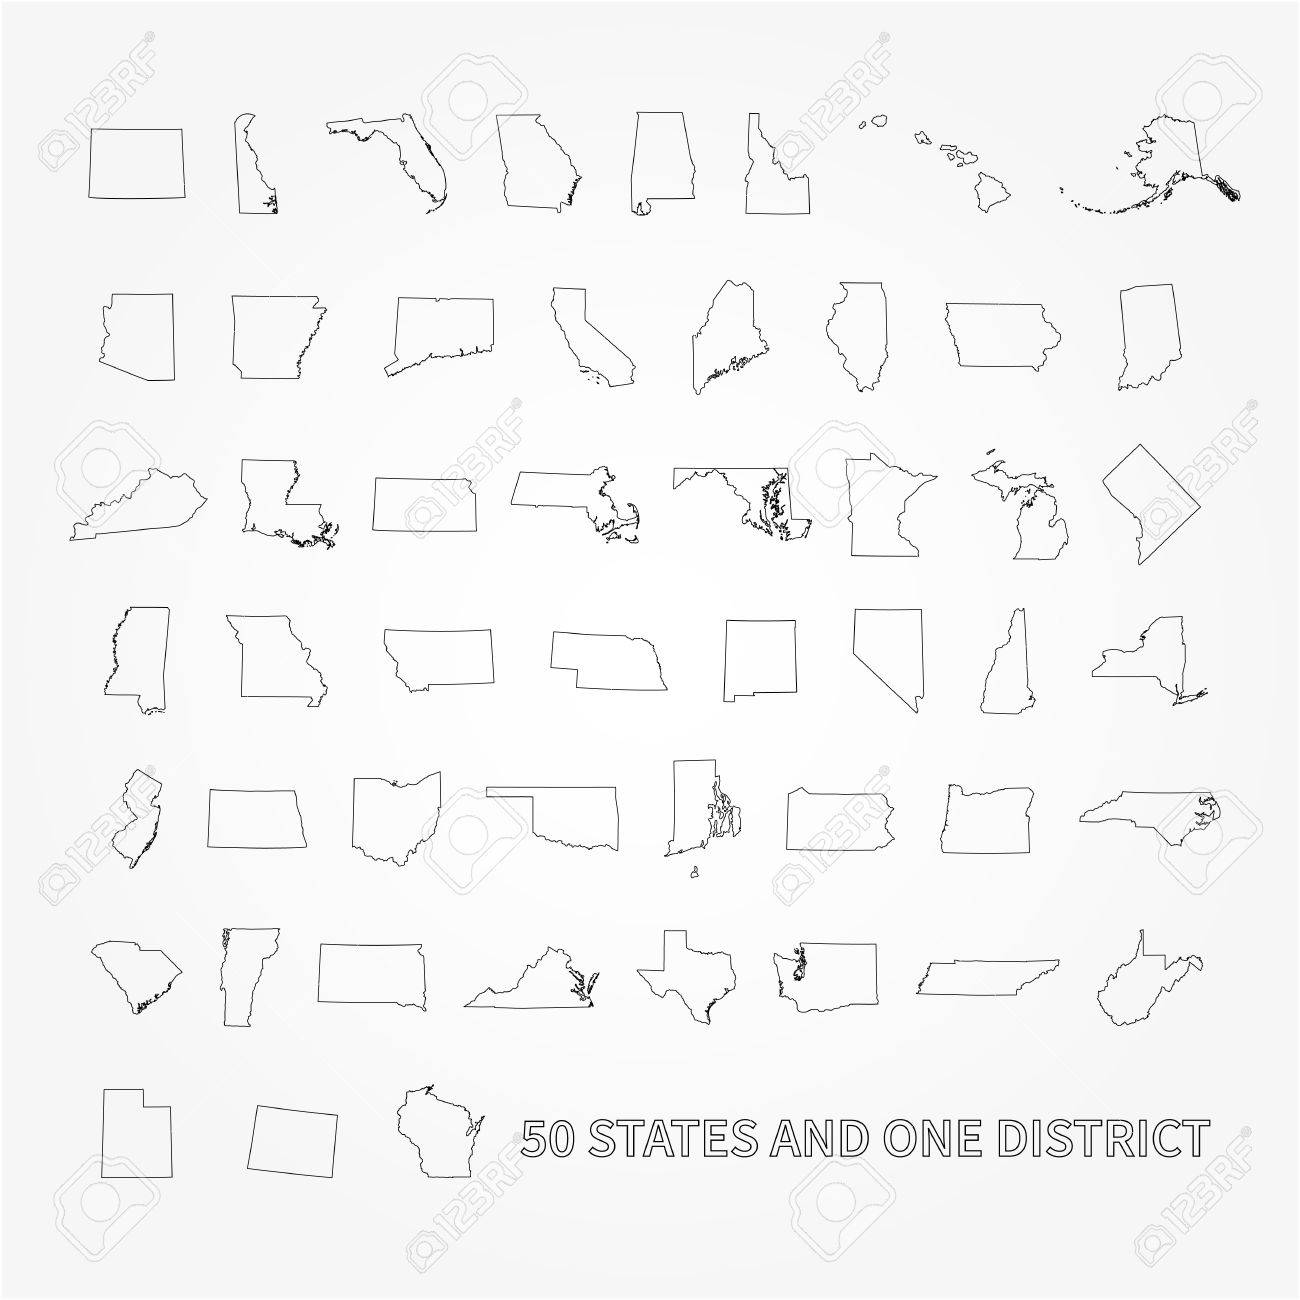 United States Of America 50 States And 1 Federal District Us